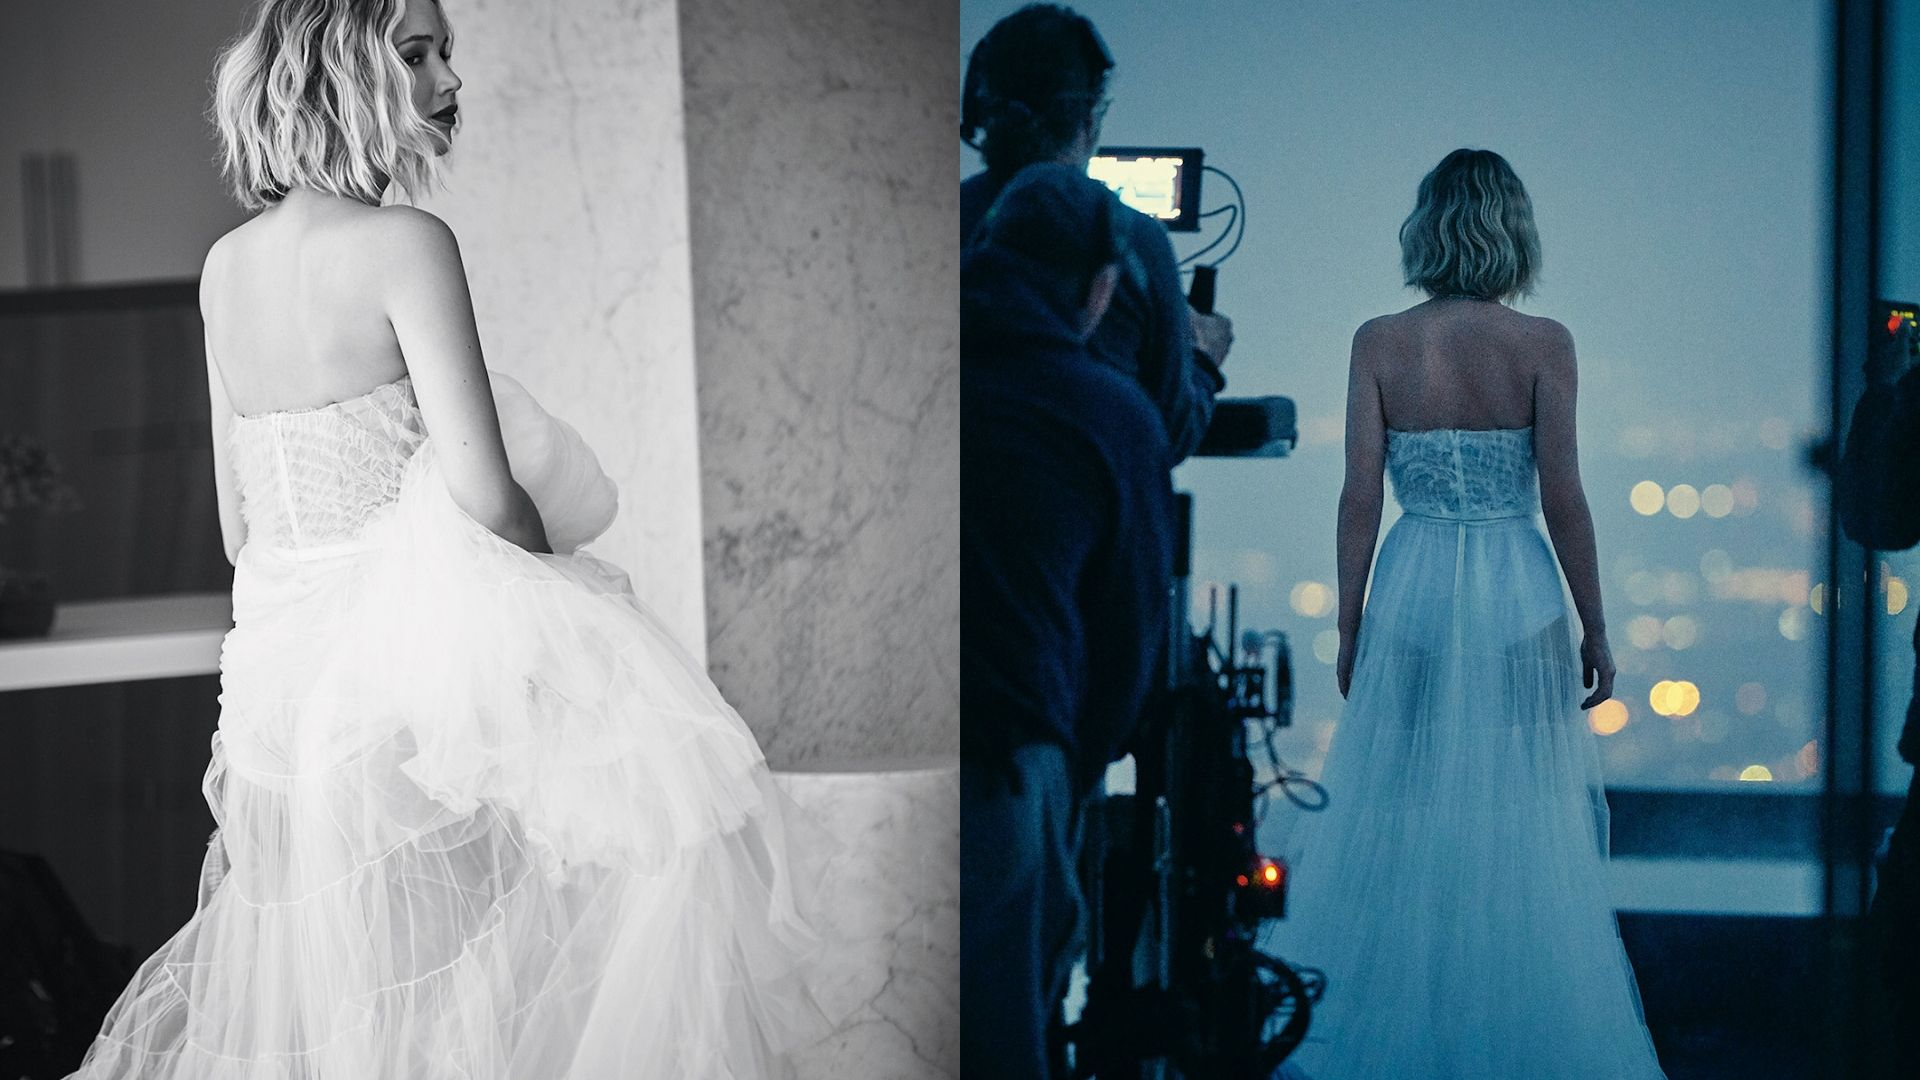 Jennifer Lawrence S Wedding Dress Had It S Own Room Harper S Bazaar Arabia